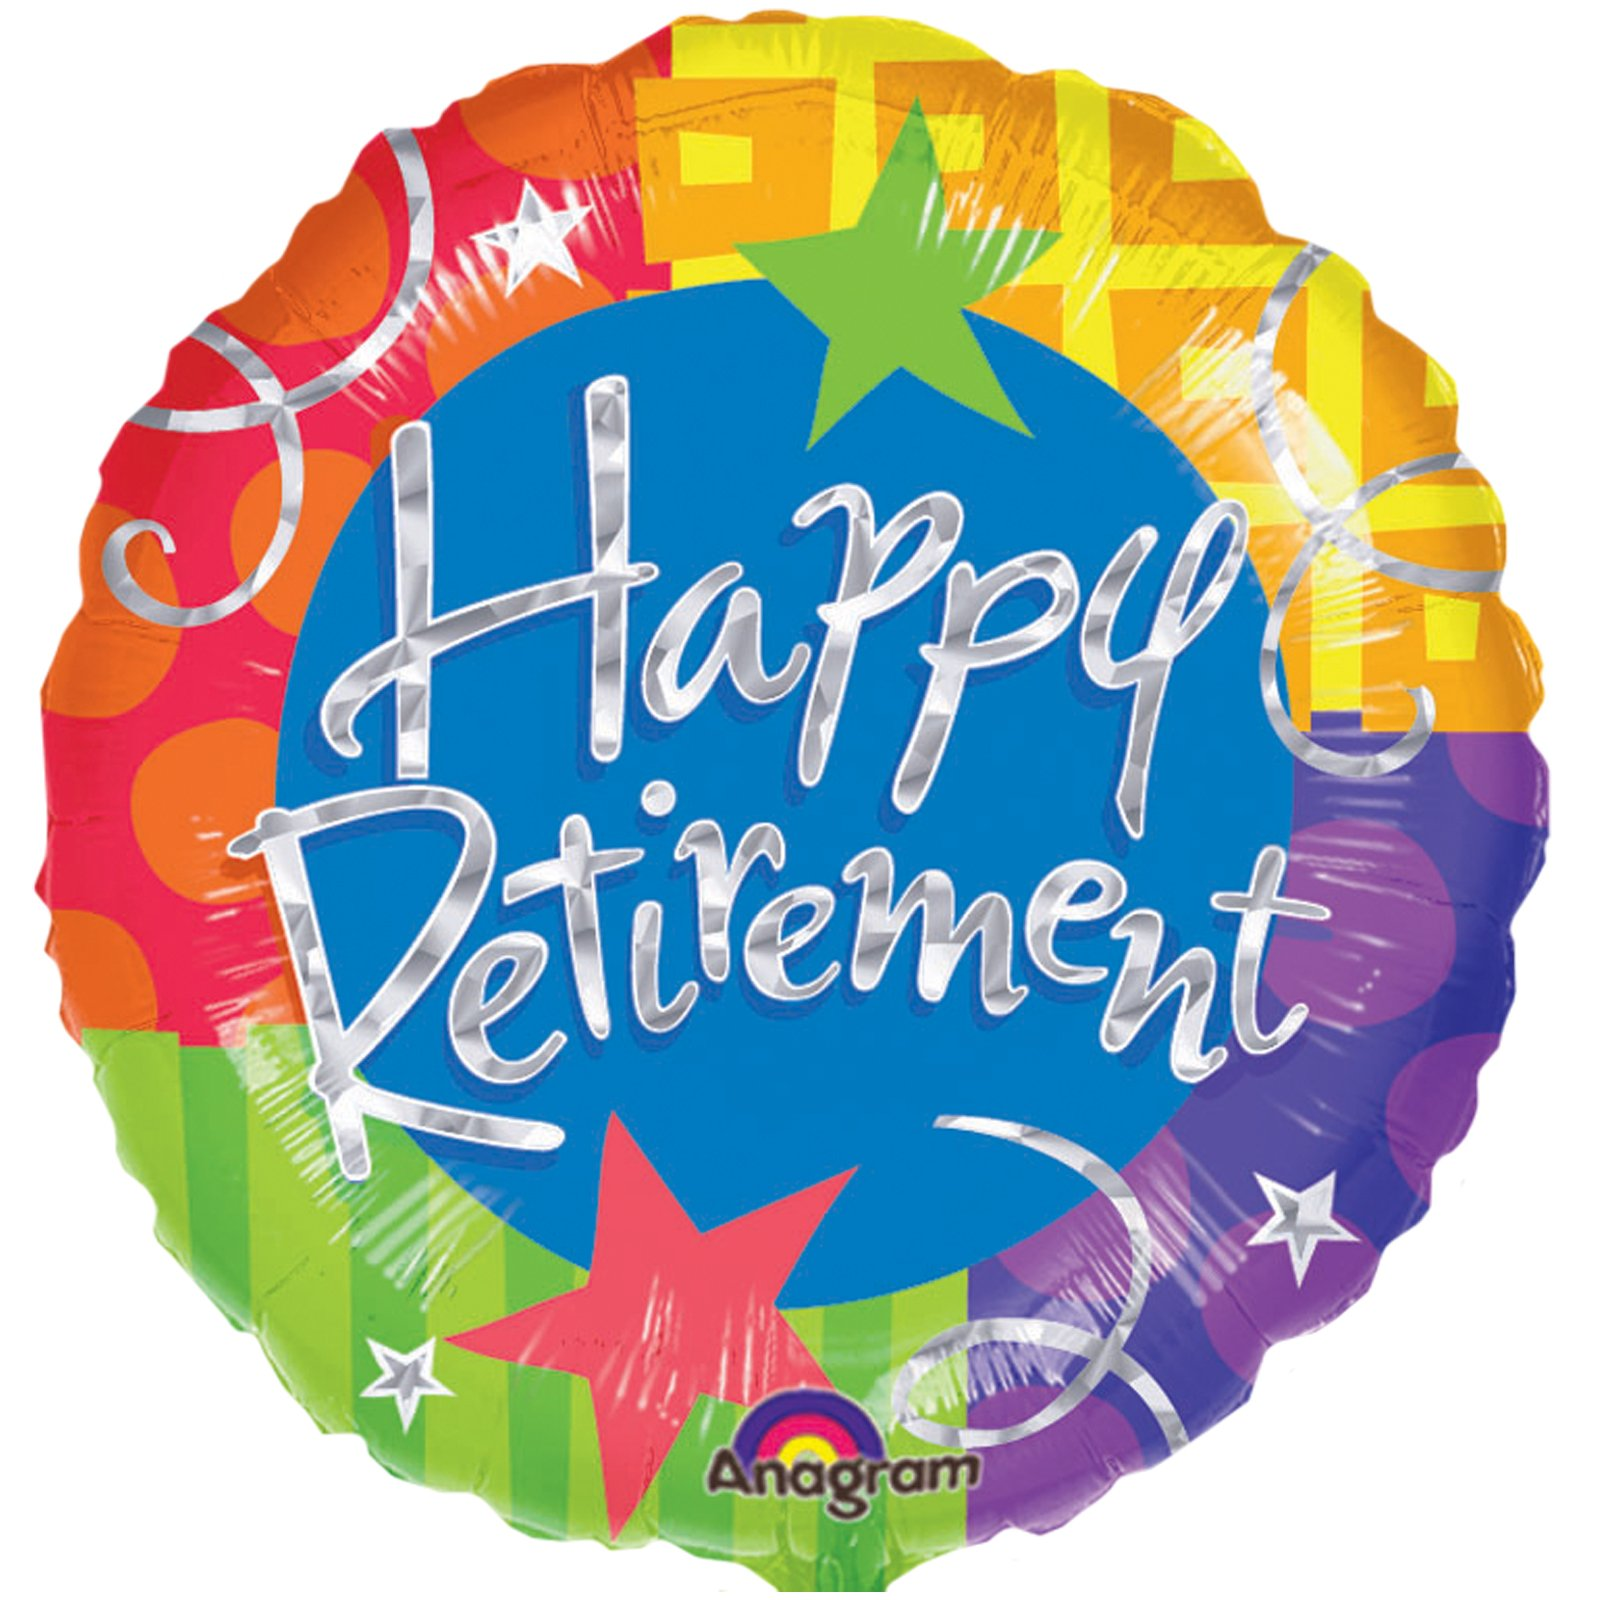 Retirement Wishes Clipart - Clipart Kid